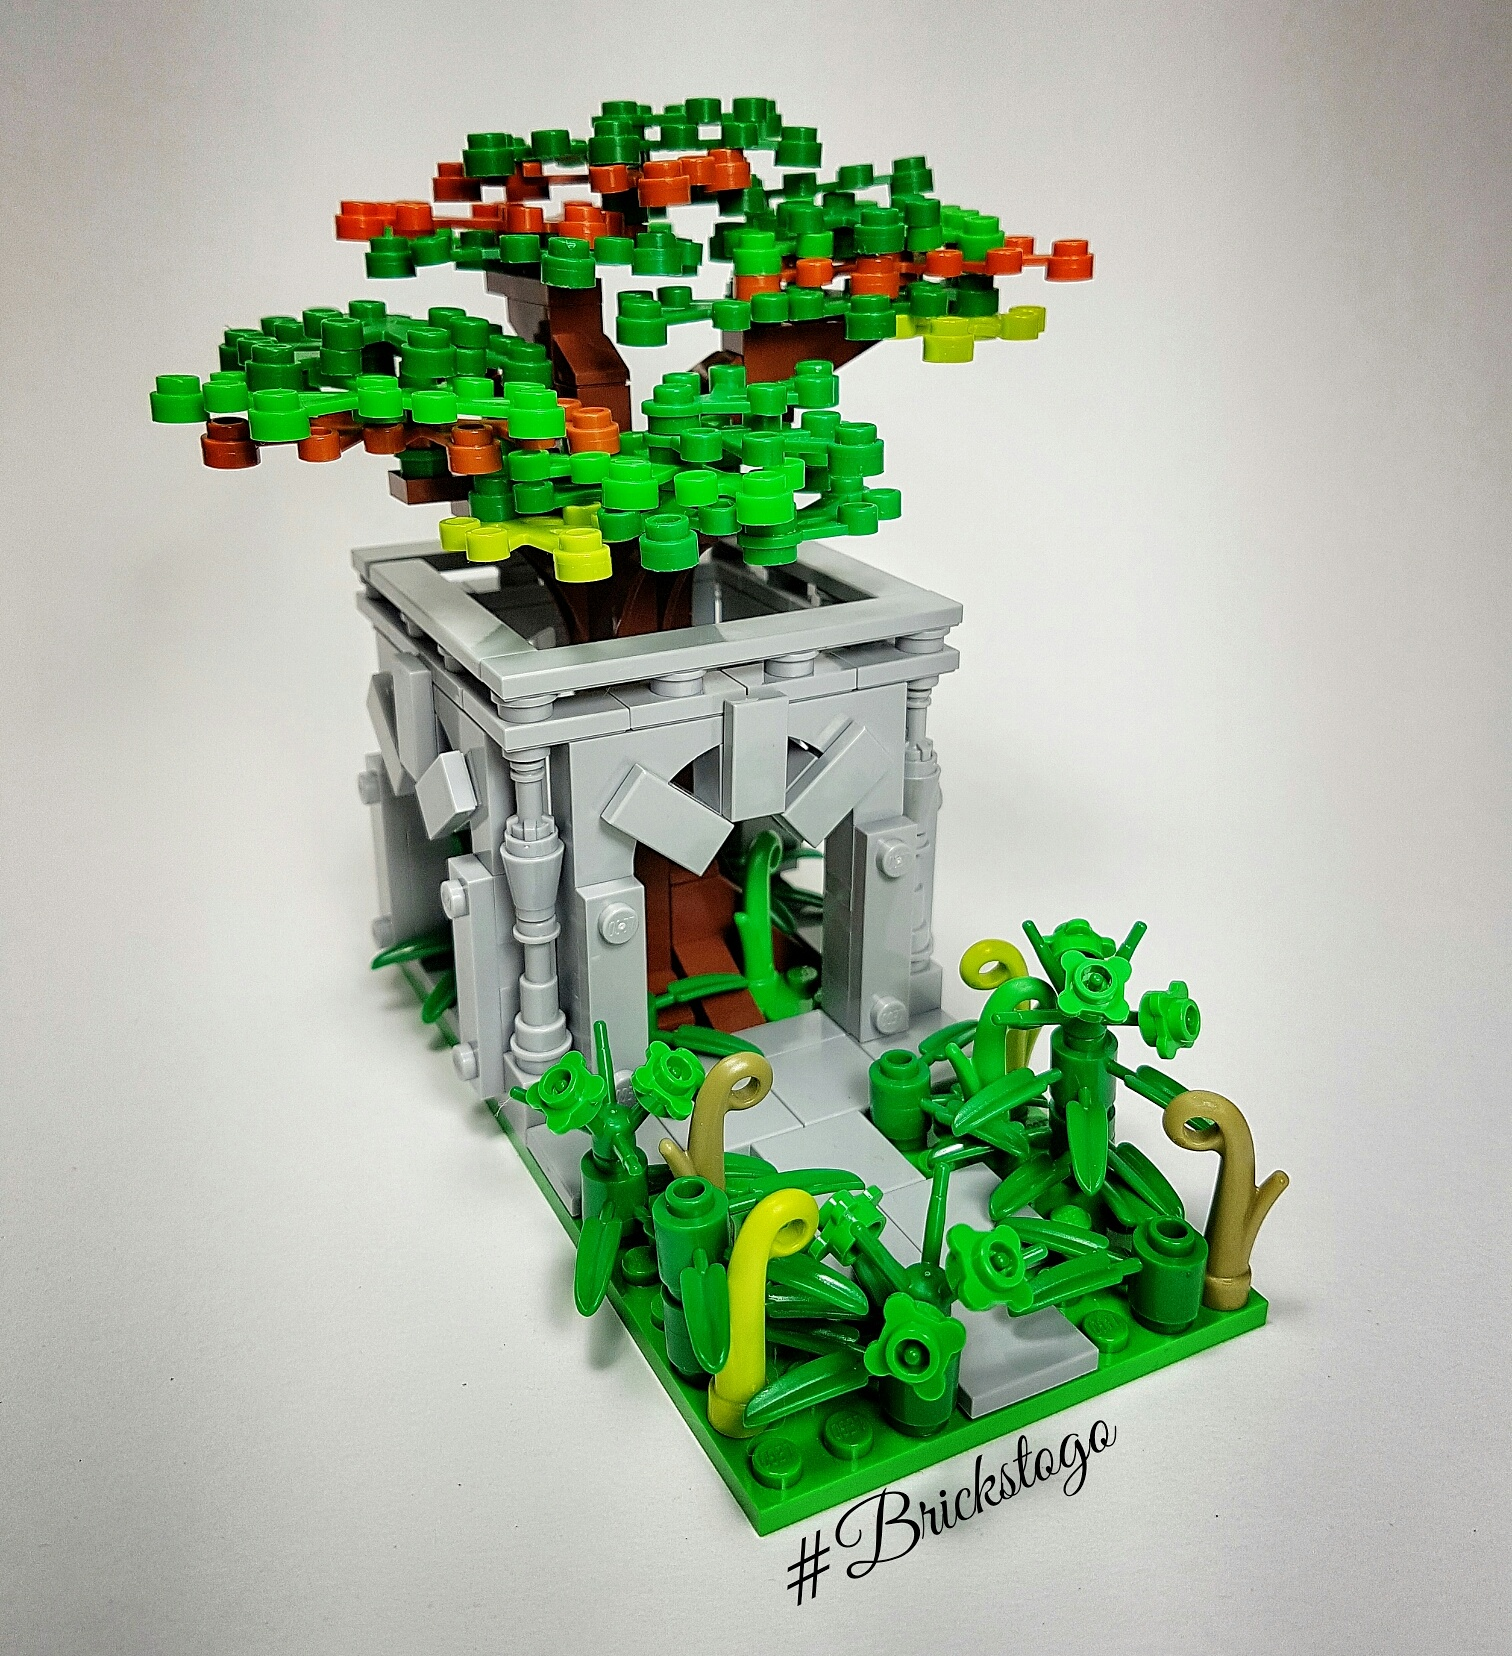 Fantasy Lego build - a forgotten temple with a tree growing in the centre